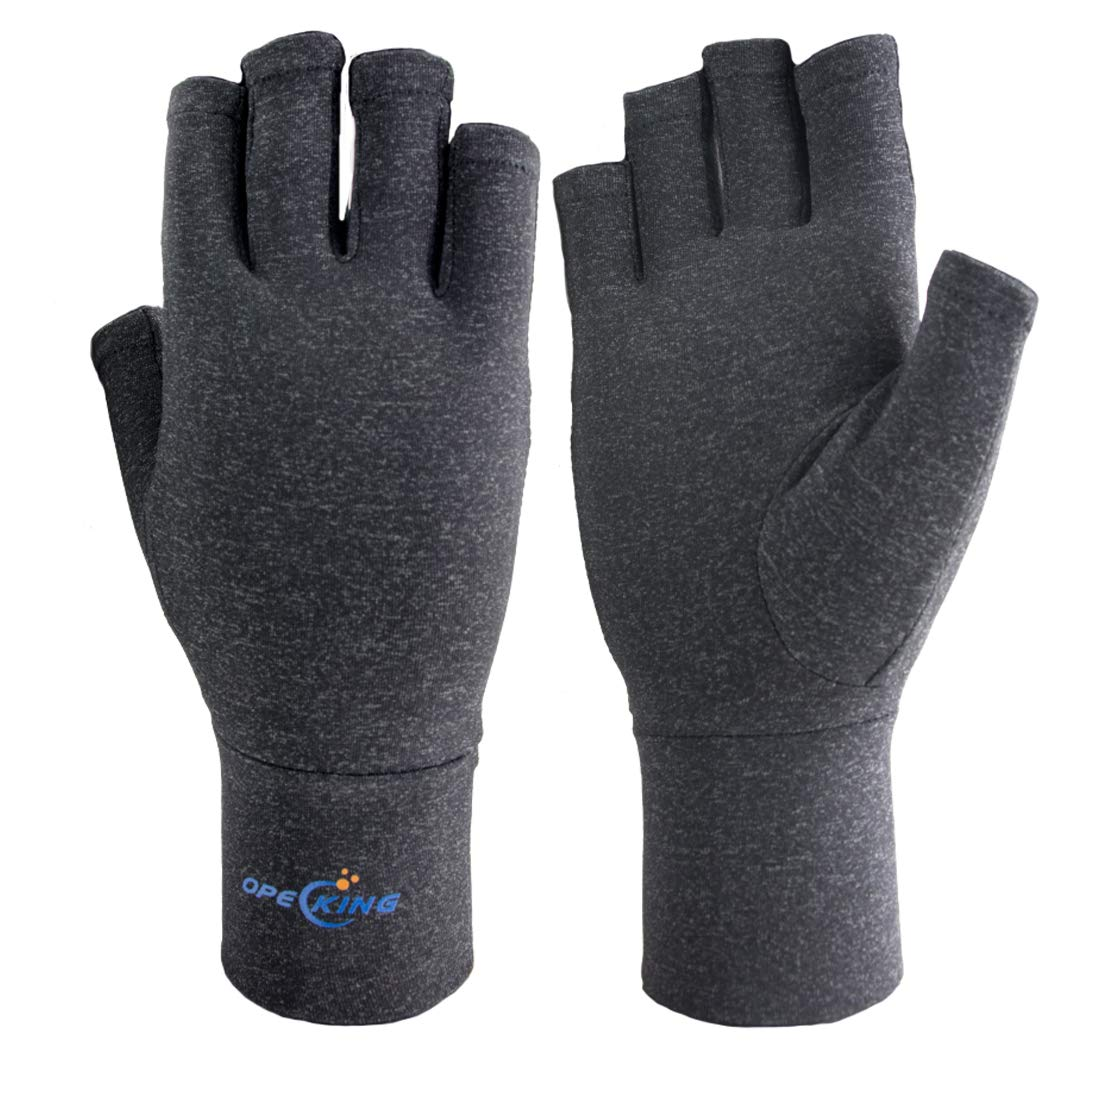 Arthritis Gloves - Compression Gloves Open Finger for Men & Women,Wrist Support for Rheumatoid & Osteoarthritis - Hand Gloves Provide Arthritic Joint Pain Symptom Relief (Large)